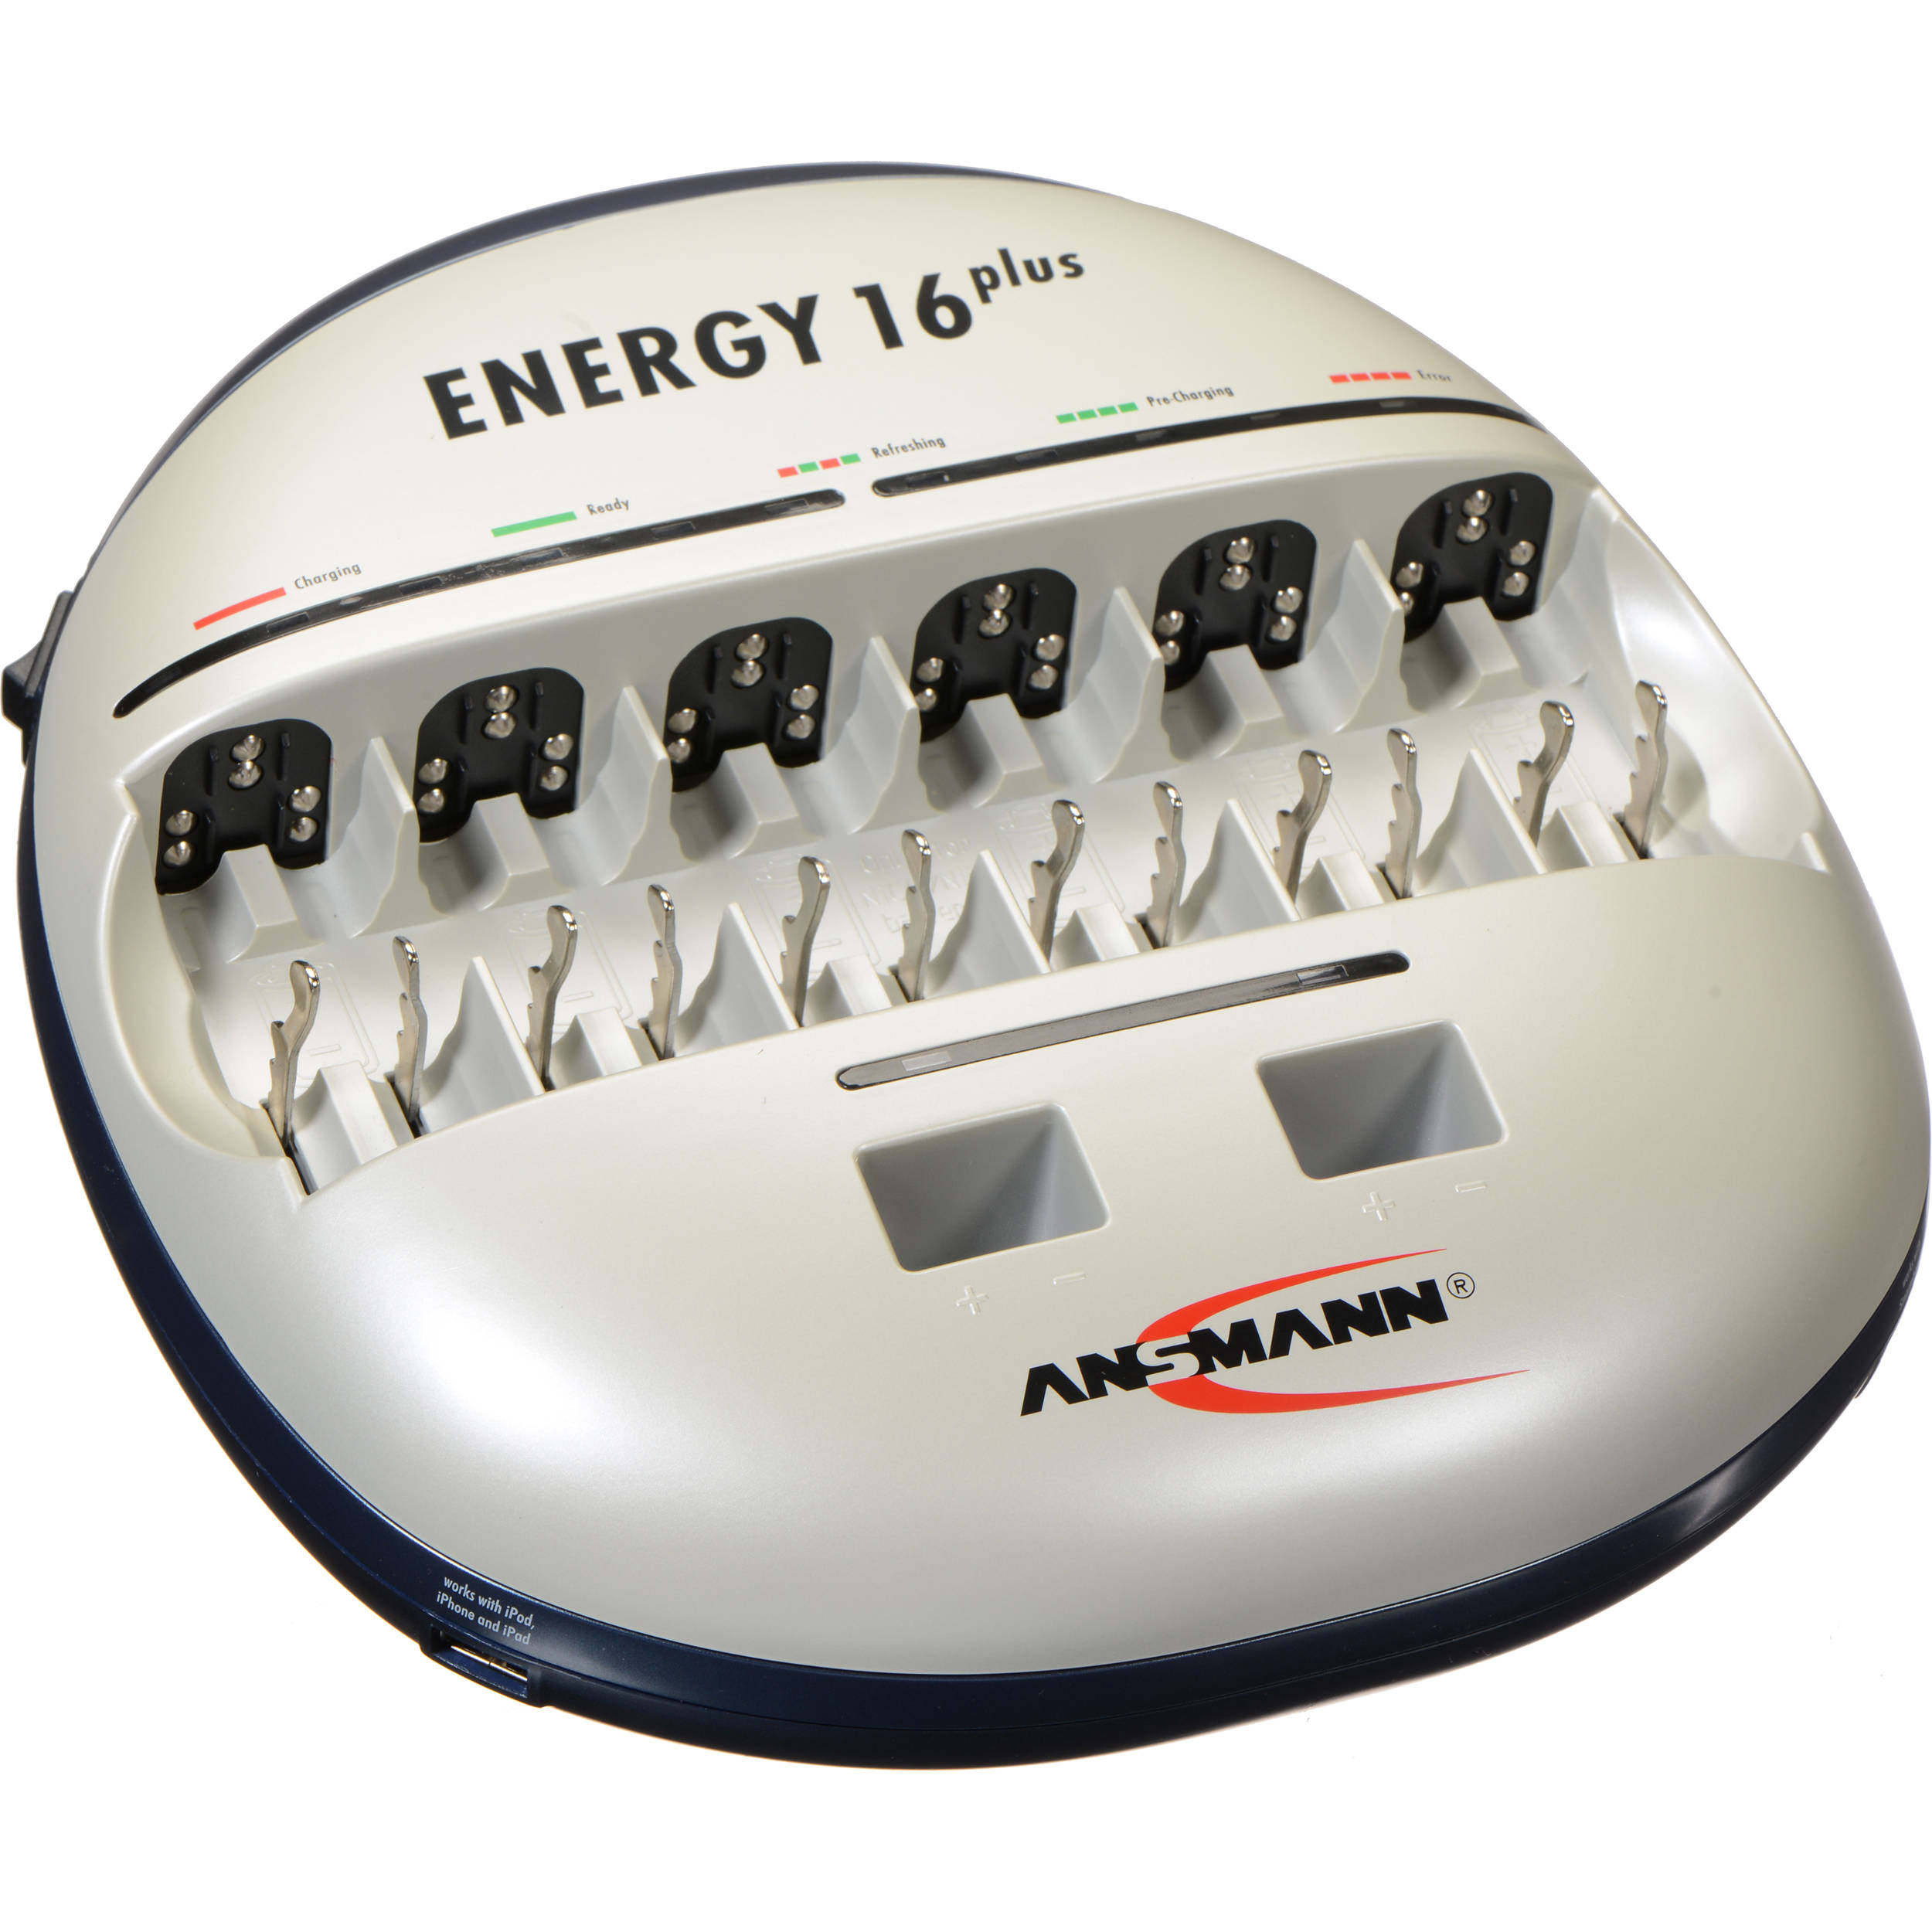 Ansmann Energy 16 Plus Charger For Nimh Or Nicd 1001 0004 Us Bh Nicad By Ic Ca3140e Batteries